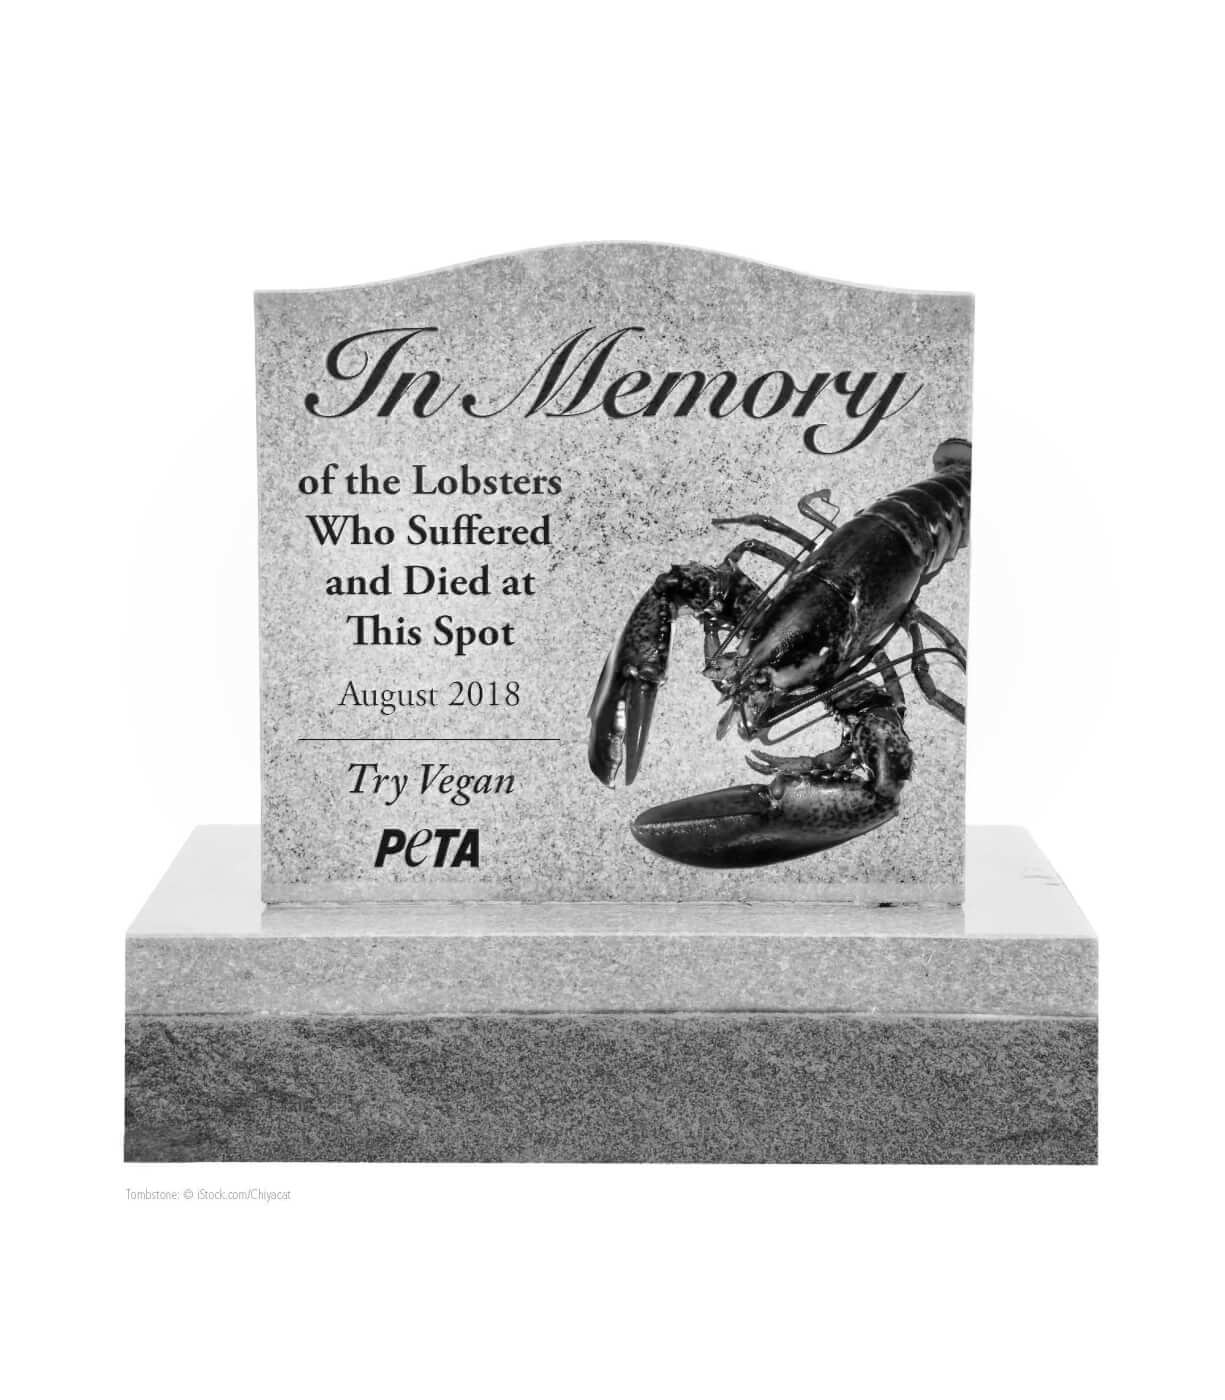 peta wants to place a gravestone for lobsters along maine road